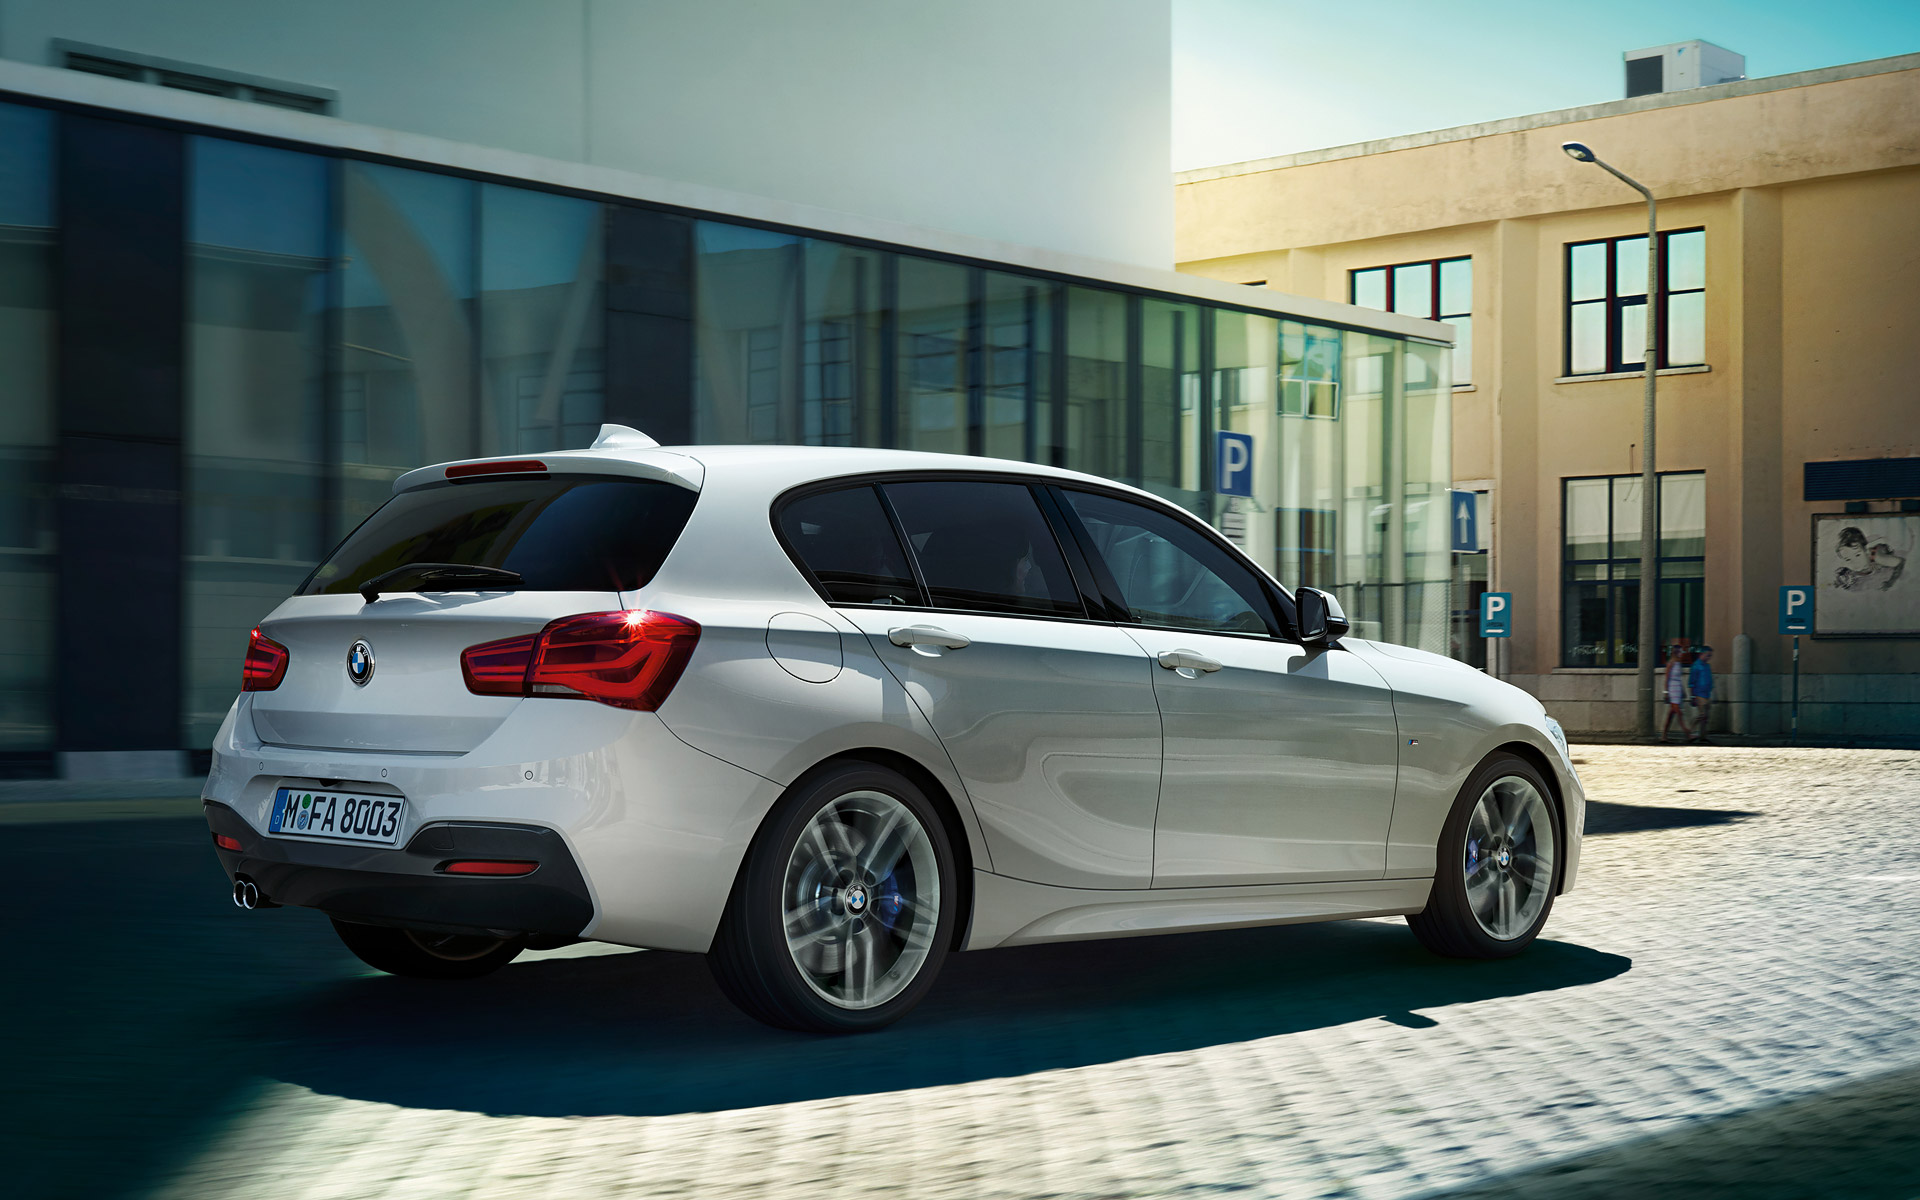 BMW 1 Series 5 Door Exterior Design